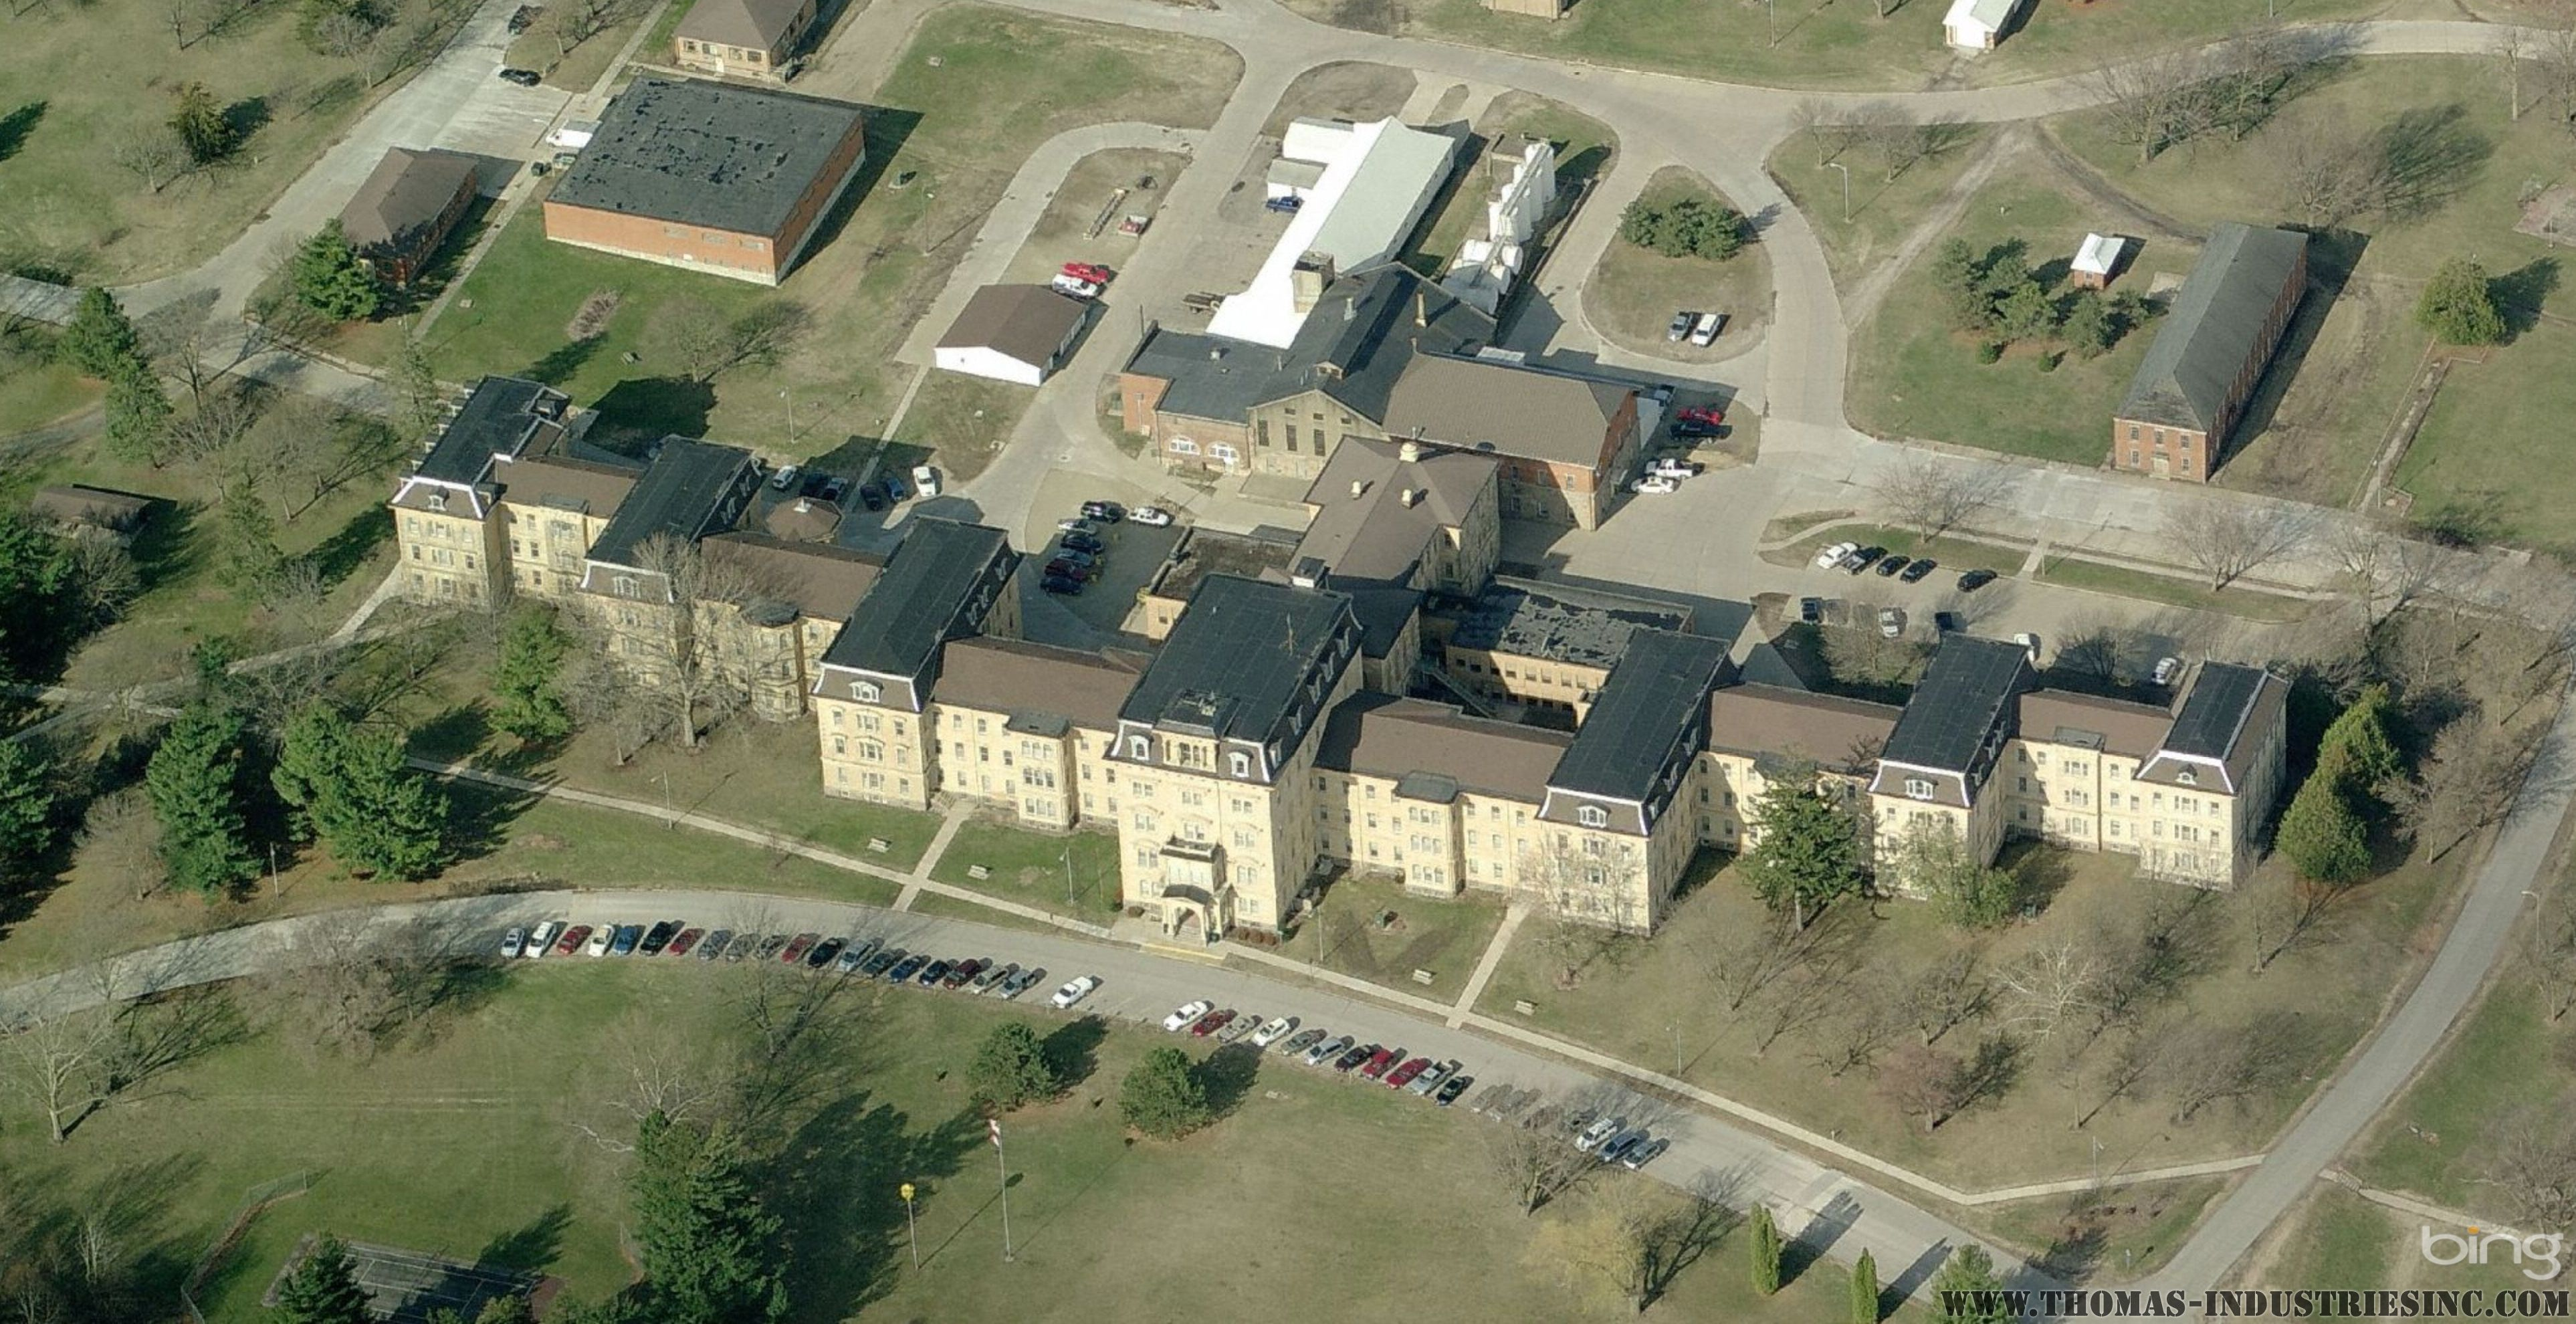 Cool Aerial View Of The Mental Health Institute This Web Site Now